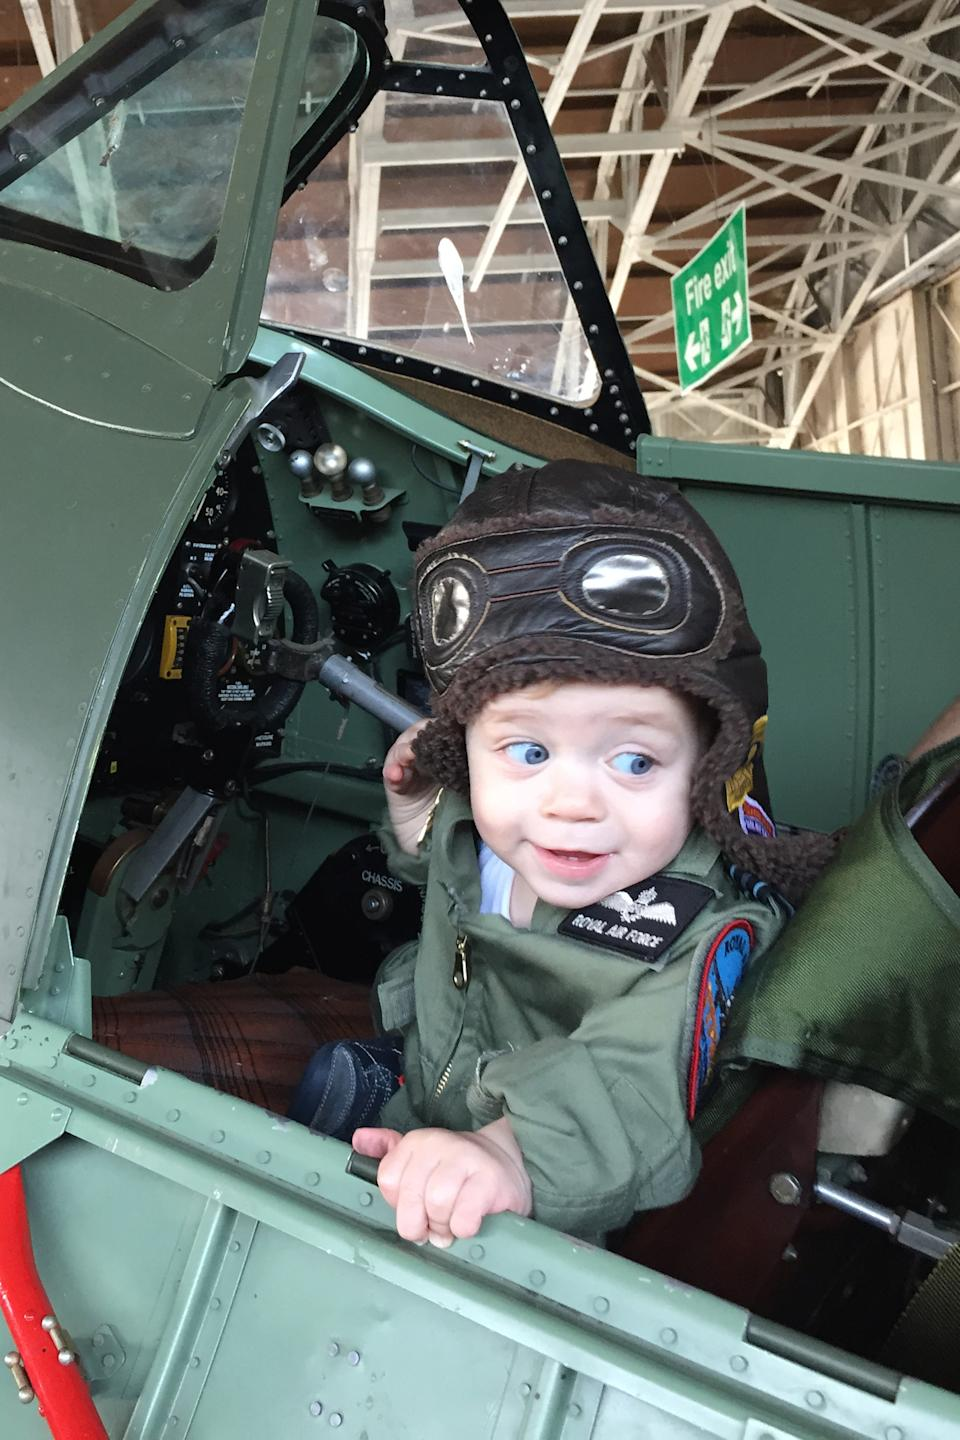 Jacob's parents took him to flying shows when he was just a baby. (Caters)